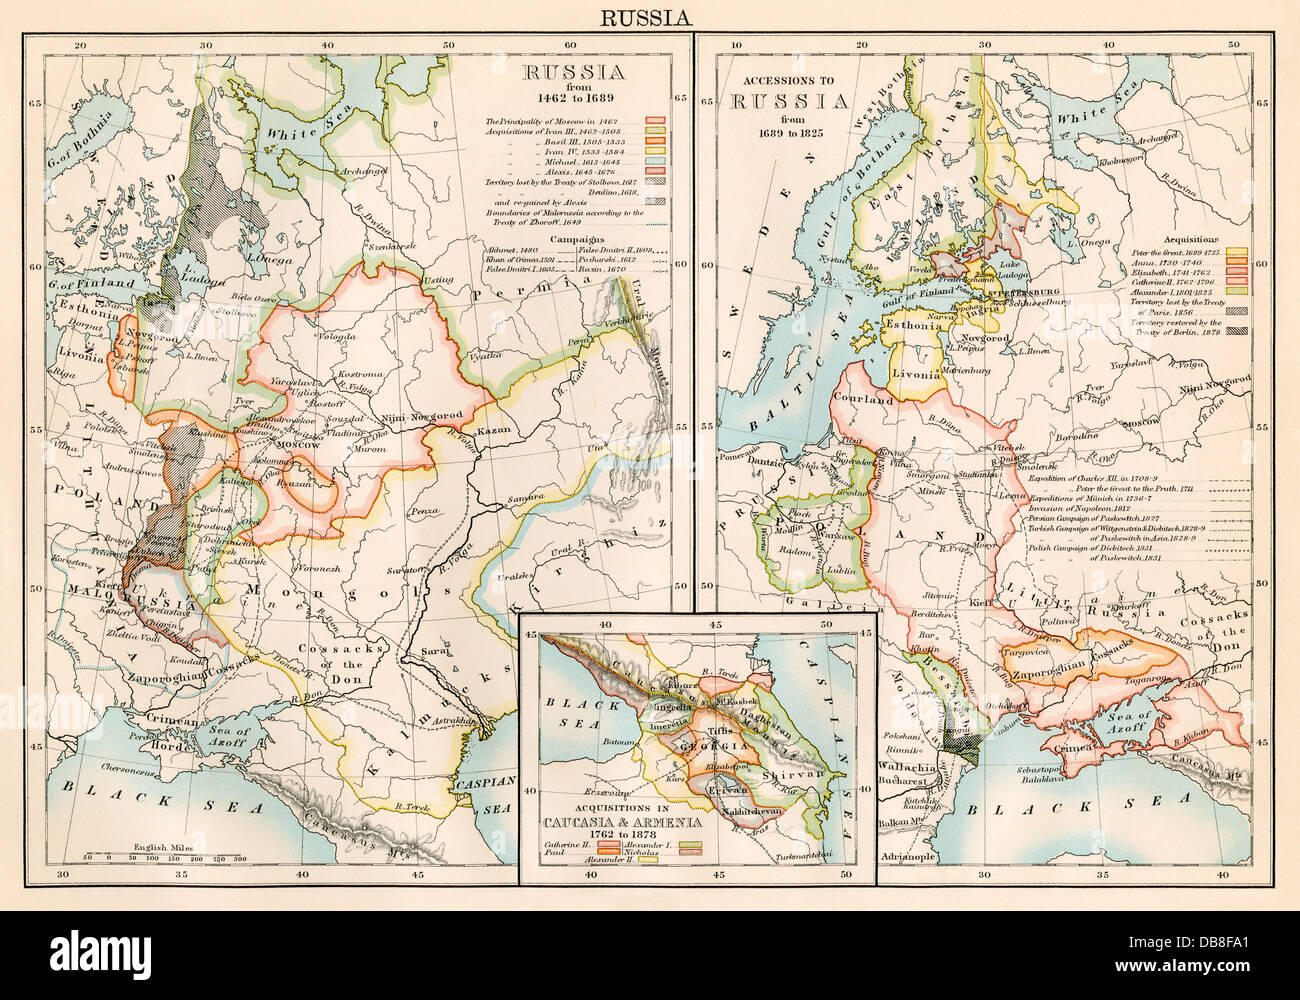 Russia 1462-1689 (left); lands added to Russian Empire 1689-1825 (right), plus Armenia and Caucasia (inset). Color - Stock Image